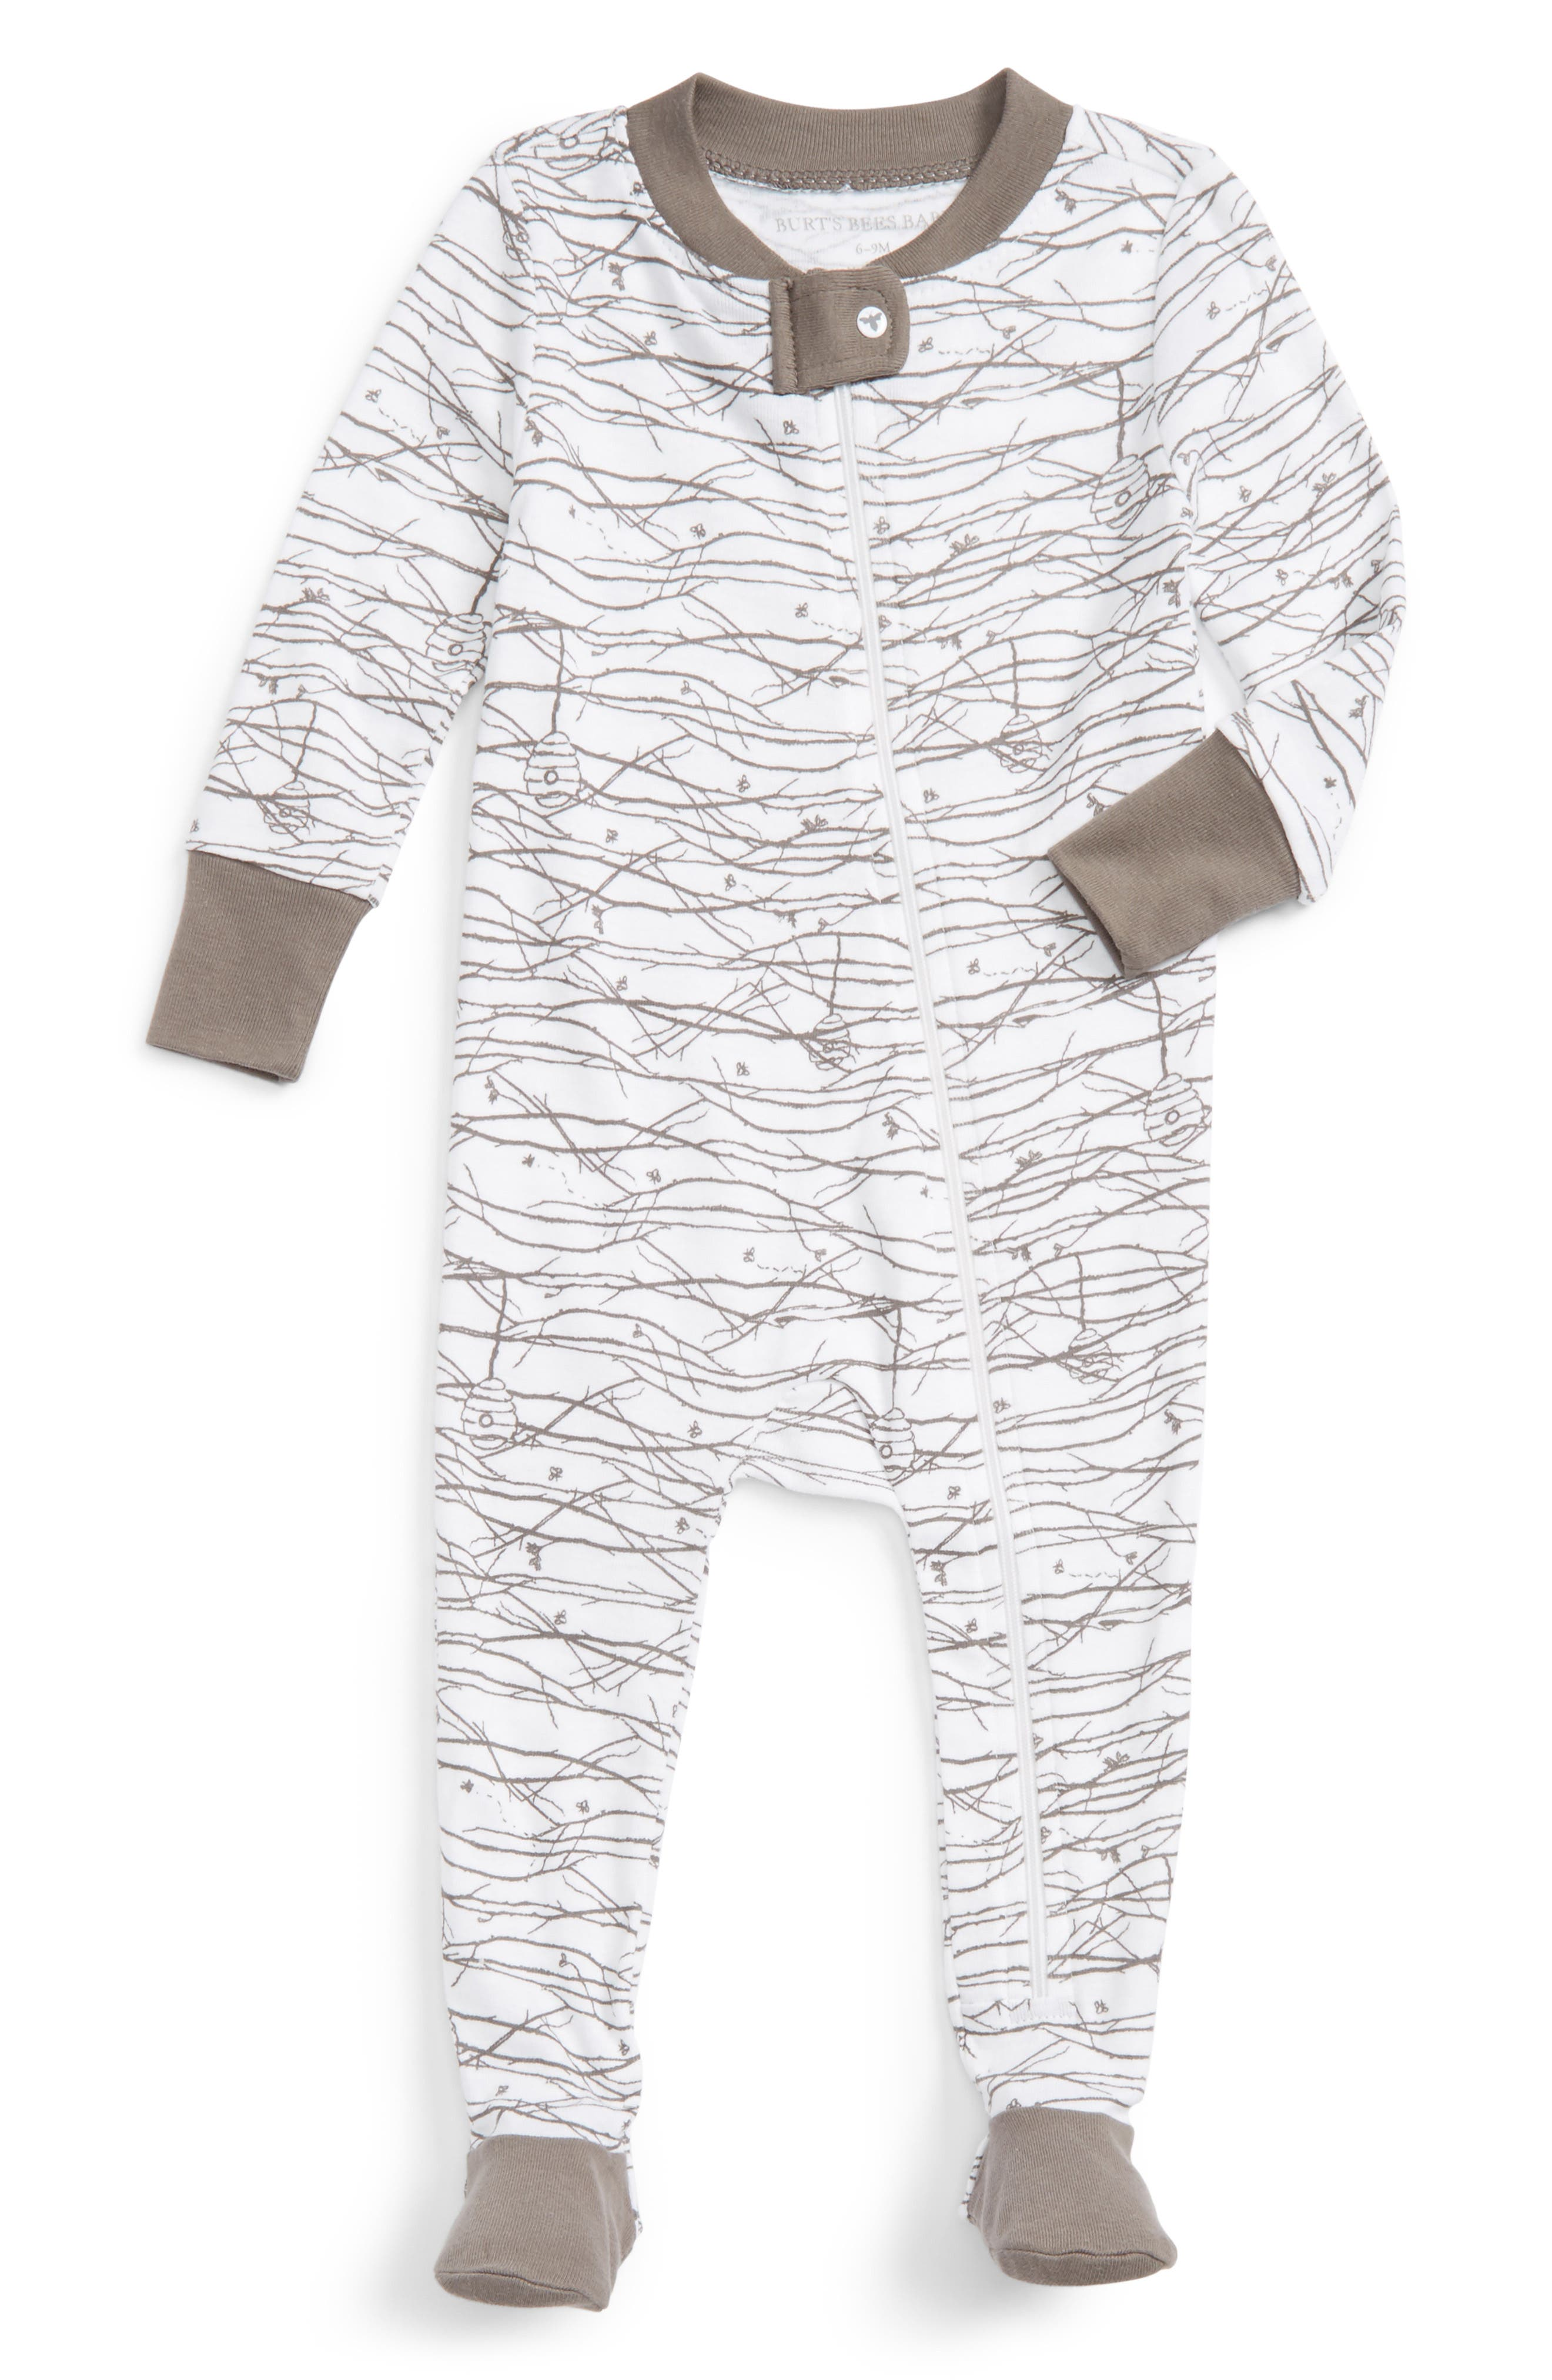 Burt's Bees Baby Autumn Trees Organic Cotton One-Piece Footed Pajamas (Baby)